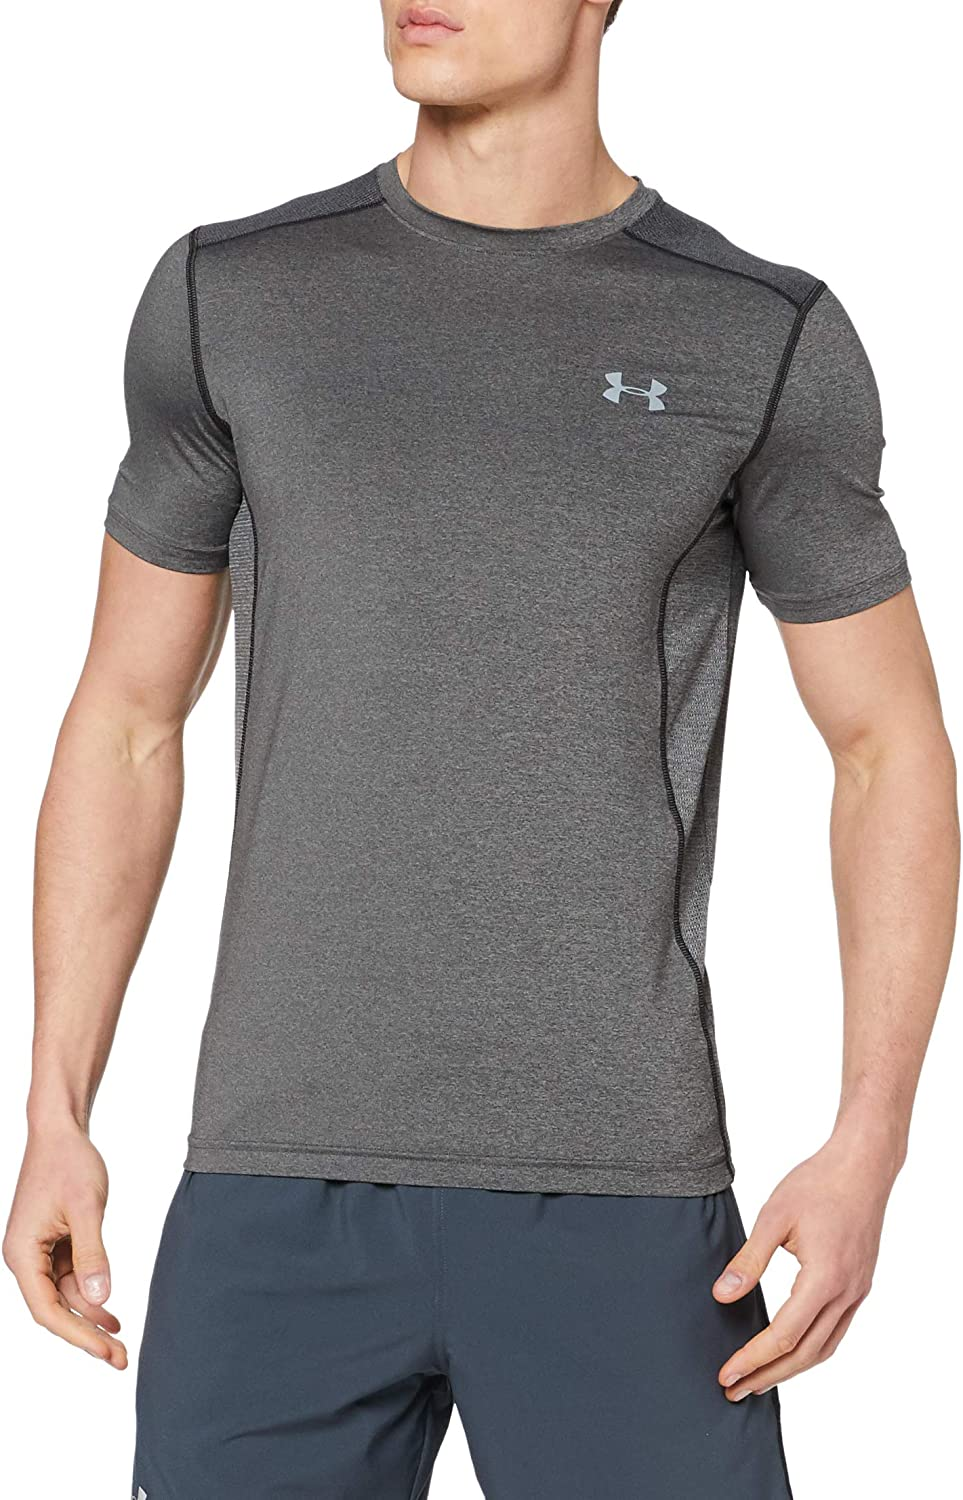 Under Armour She Plays We Win Graphic Short Sleeve Short Sleeve